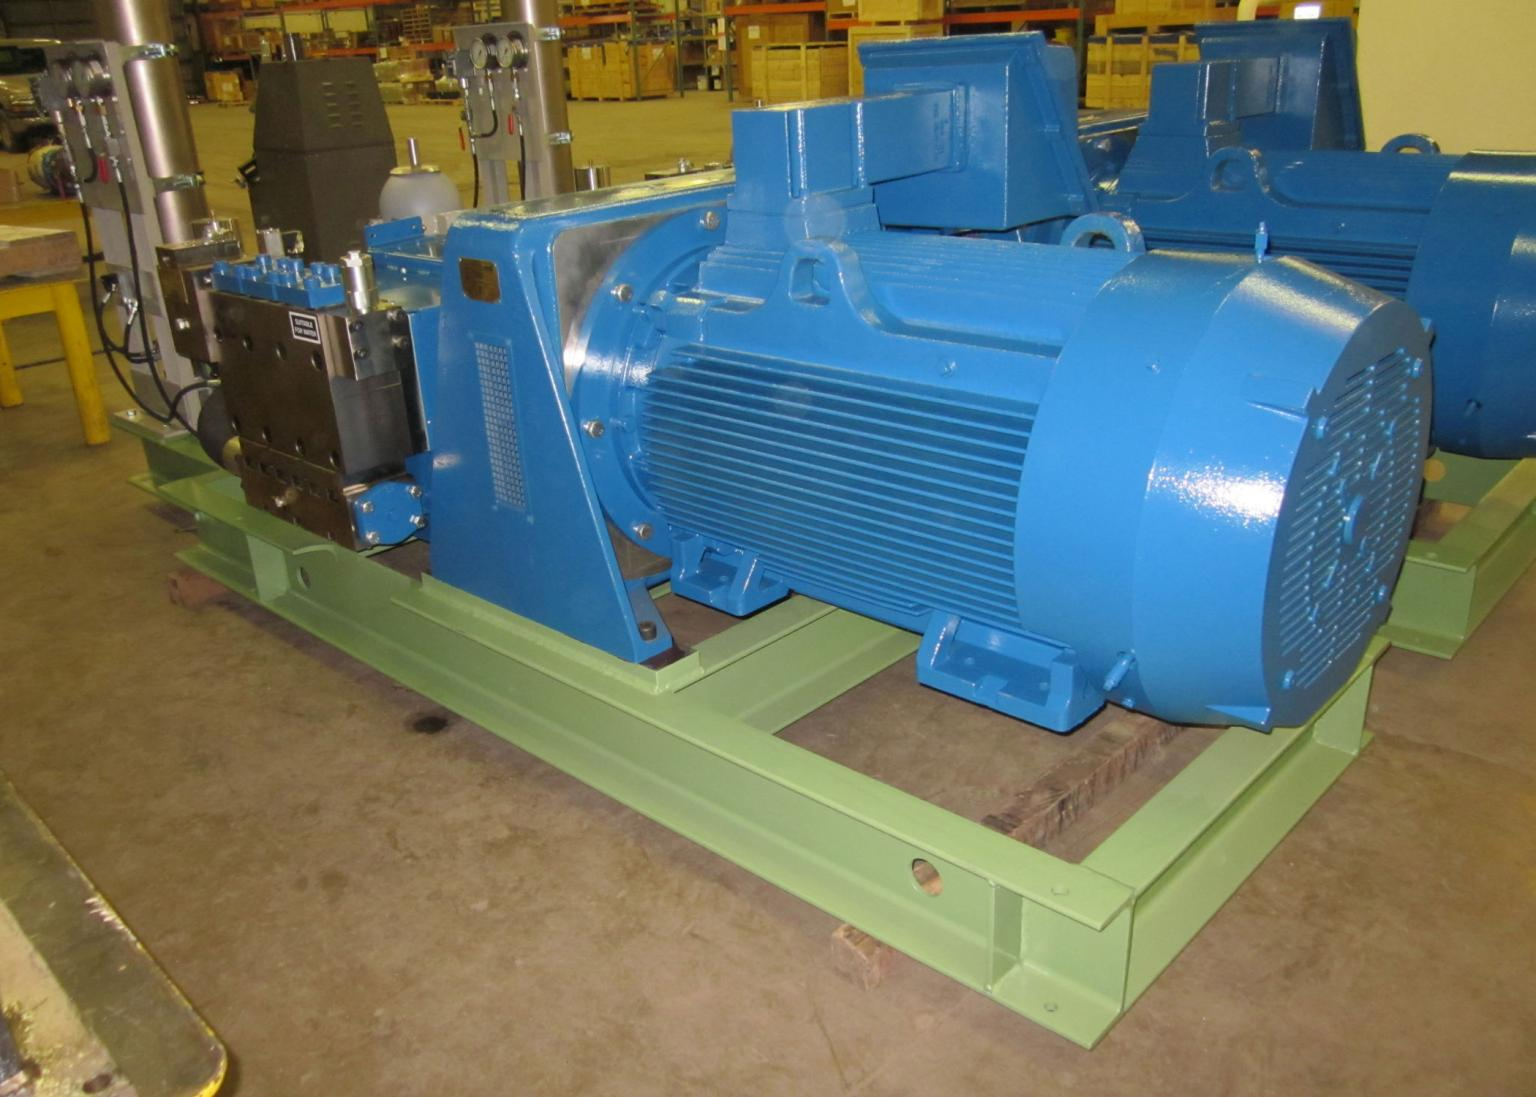 Positive displacement pumps require a smaller motor than rotary pumps